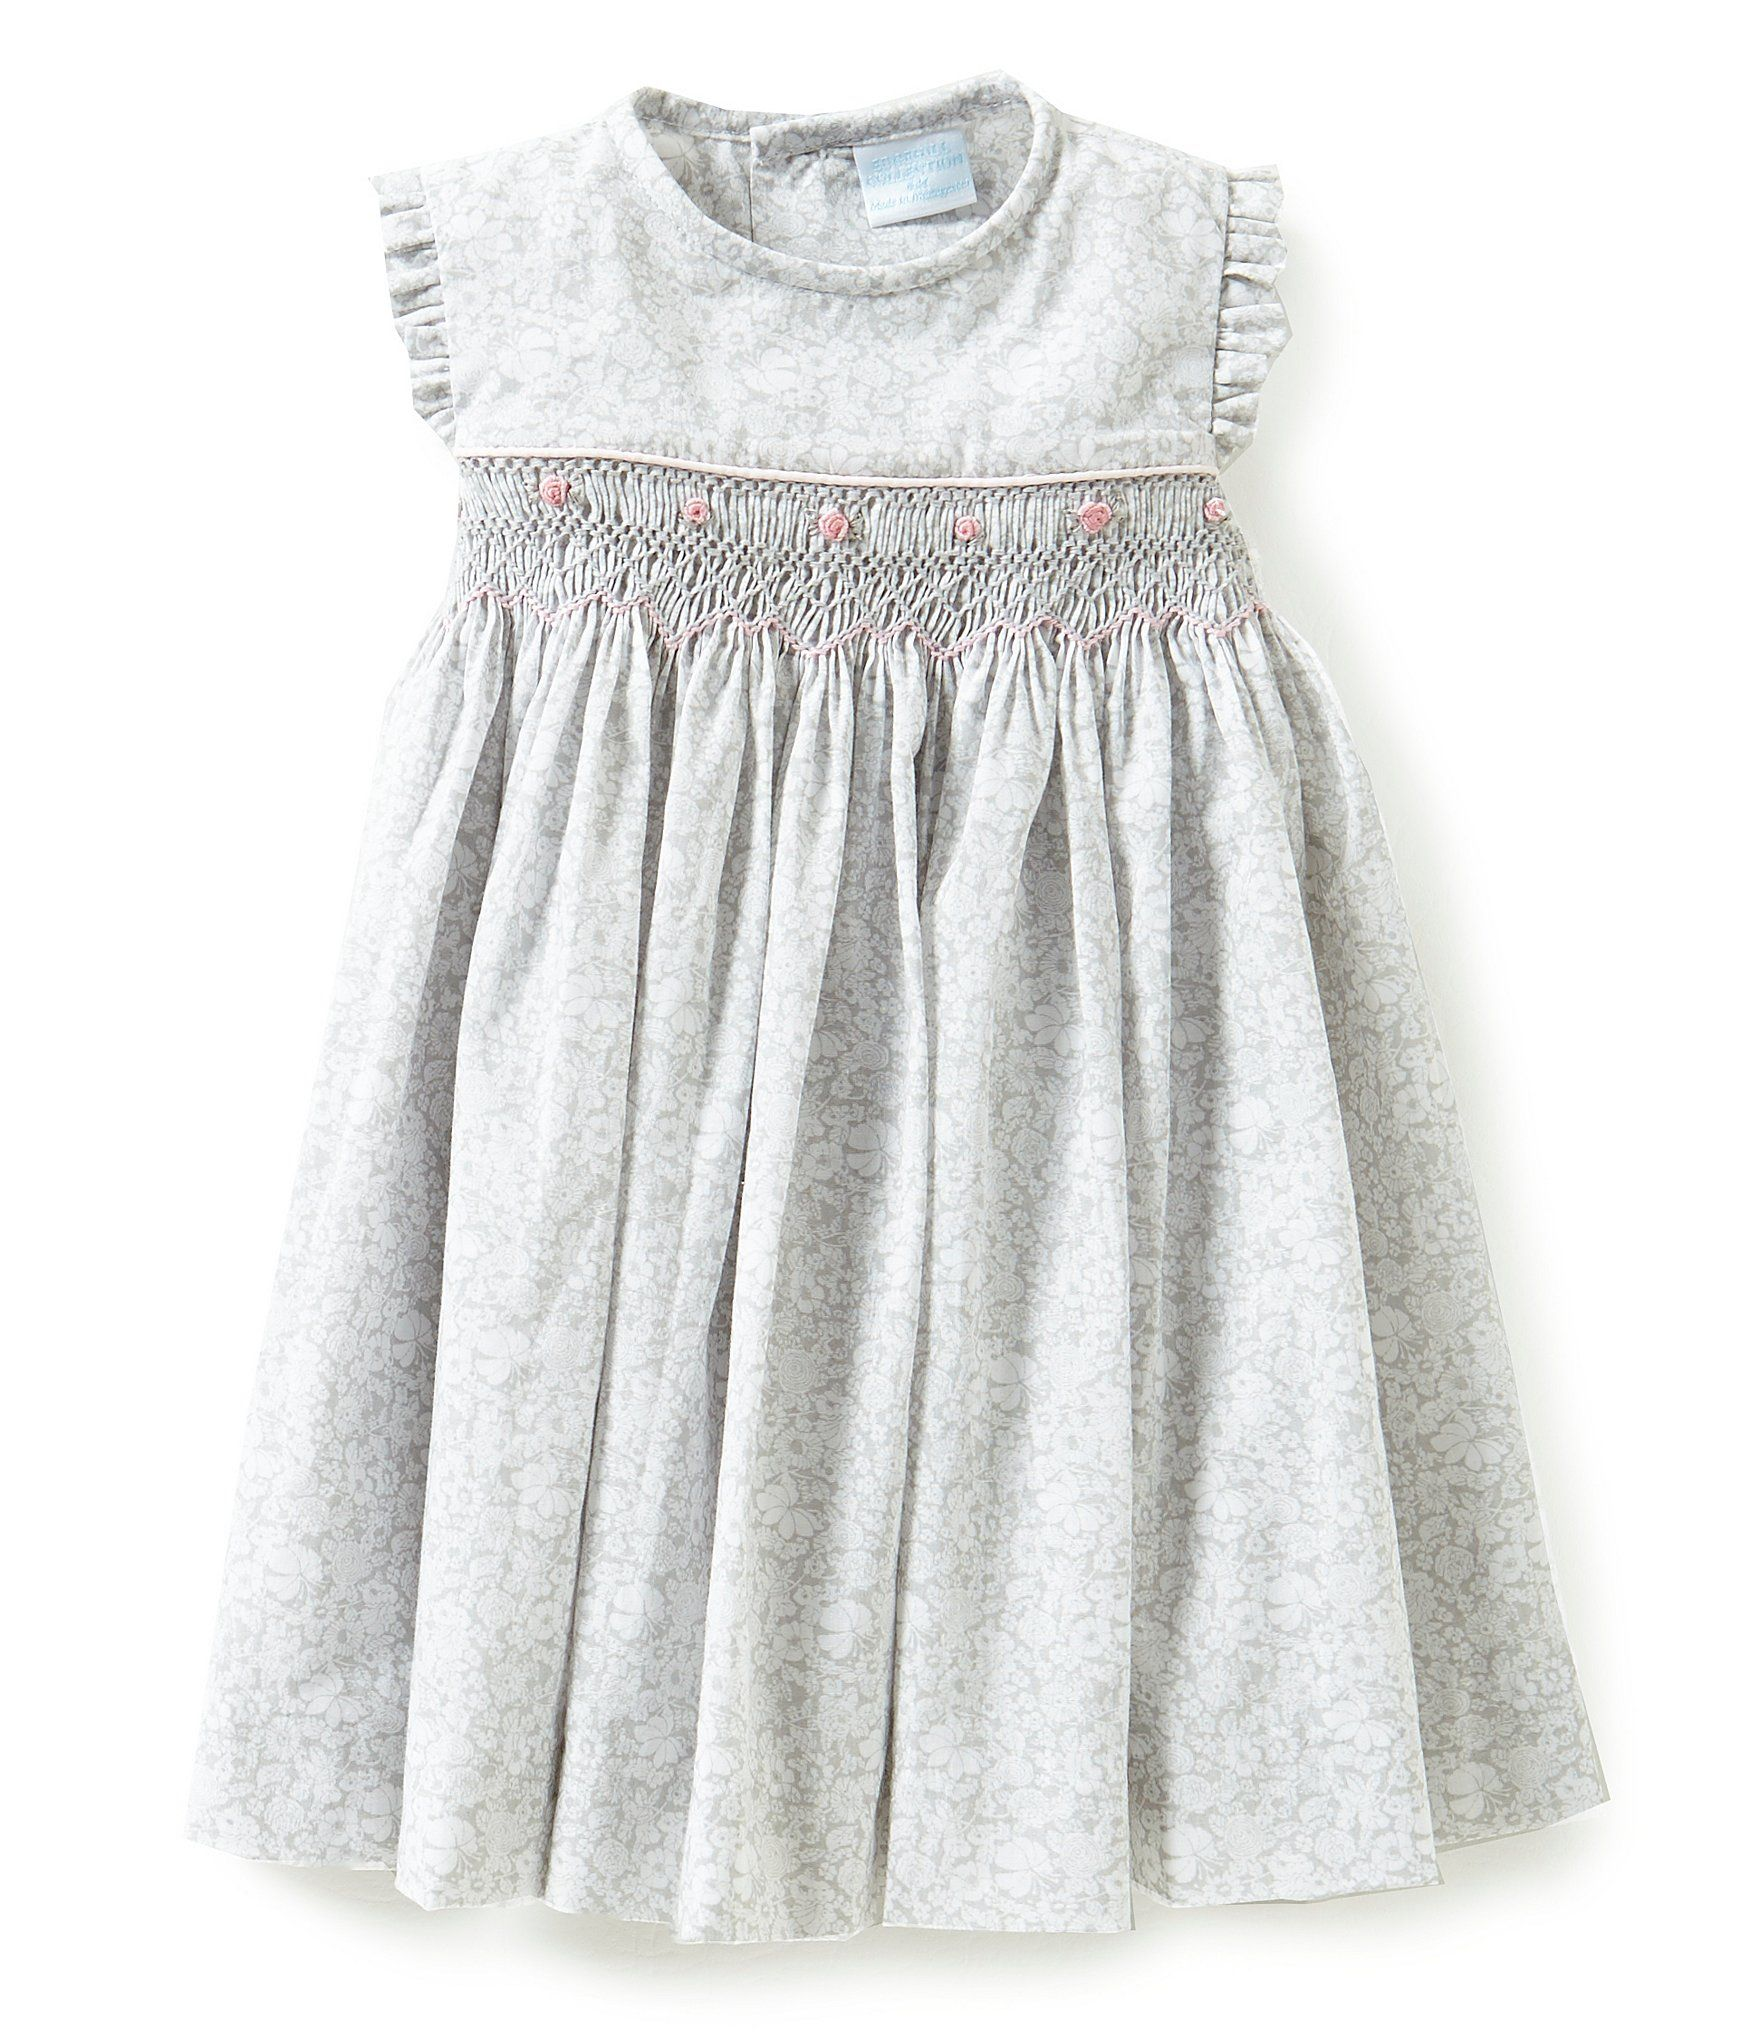 Shop for Edgehill Collection Baby Girls 3 24 Months Smocked Dress at